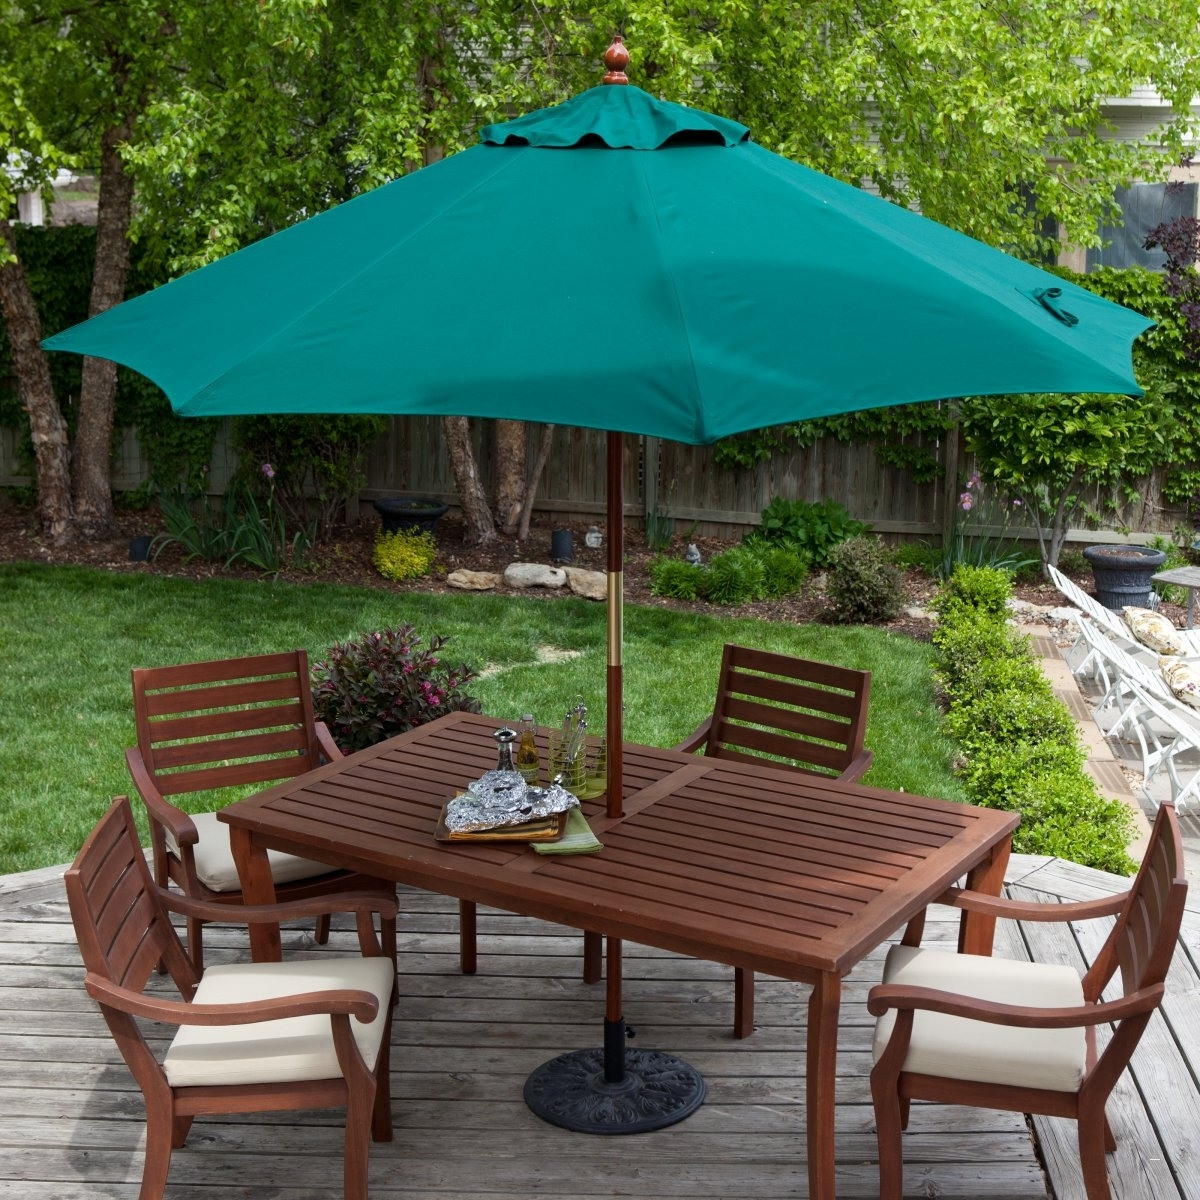 Most Recent Small Patio Table With Umbrella Hole – Luxury Metal Patio Table With Inside Small Patio Tables With Umbrellas Hole (View 6 of 20)